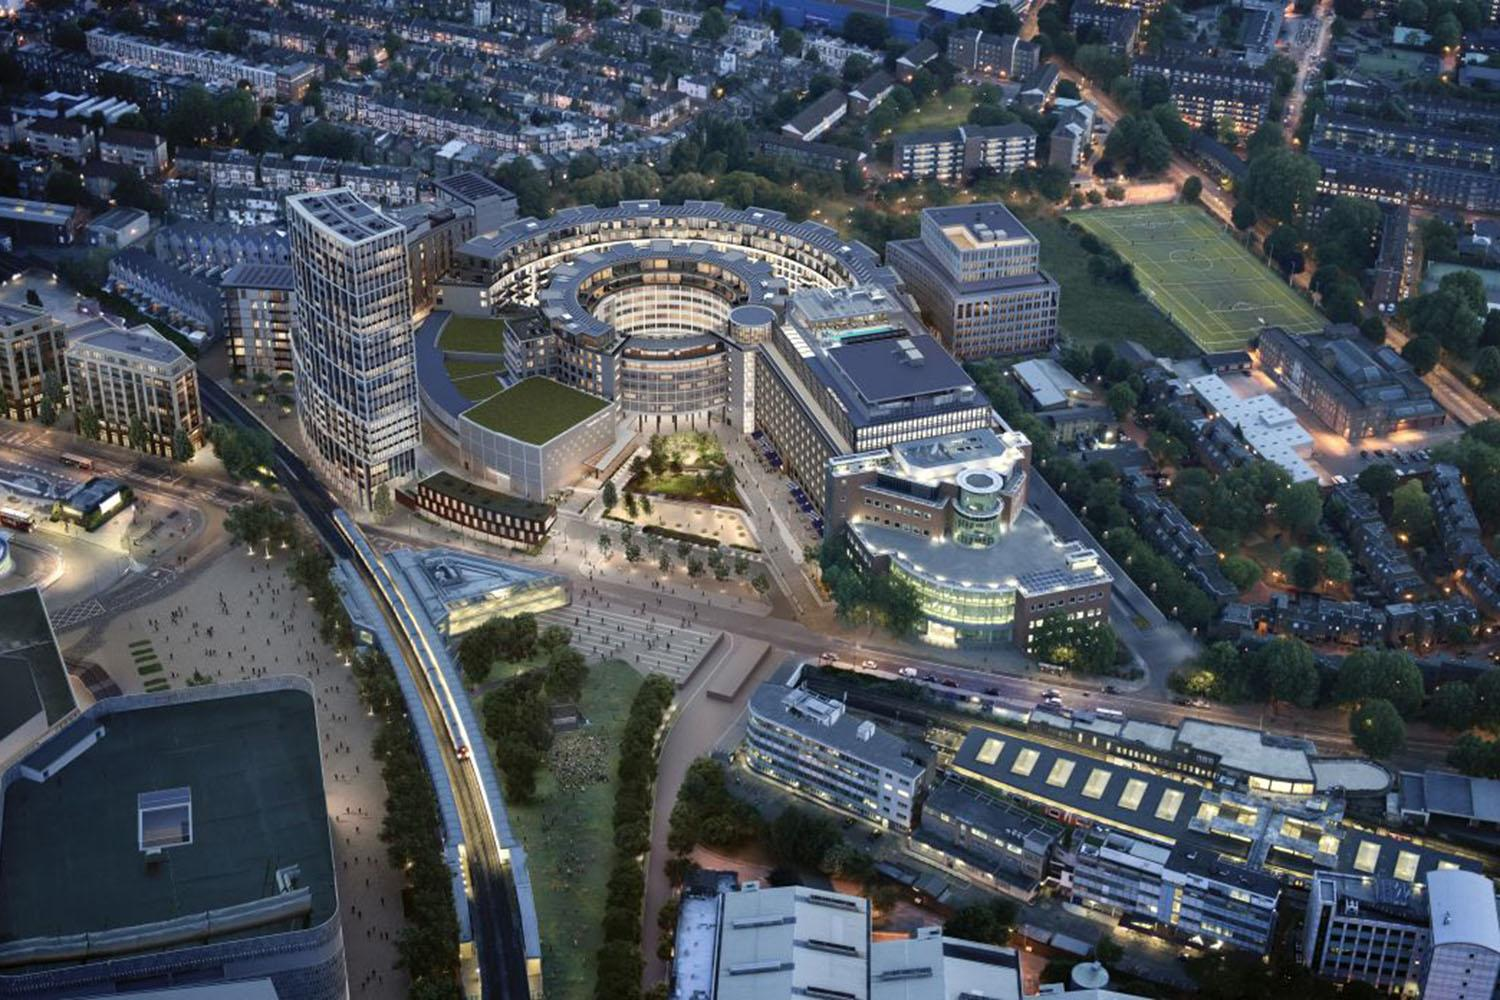 White City how Soho House the BBC and the London